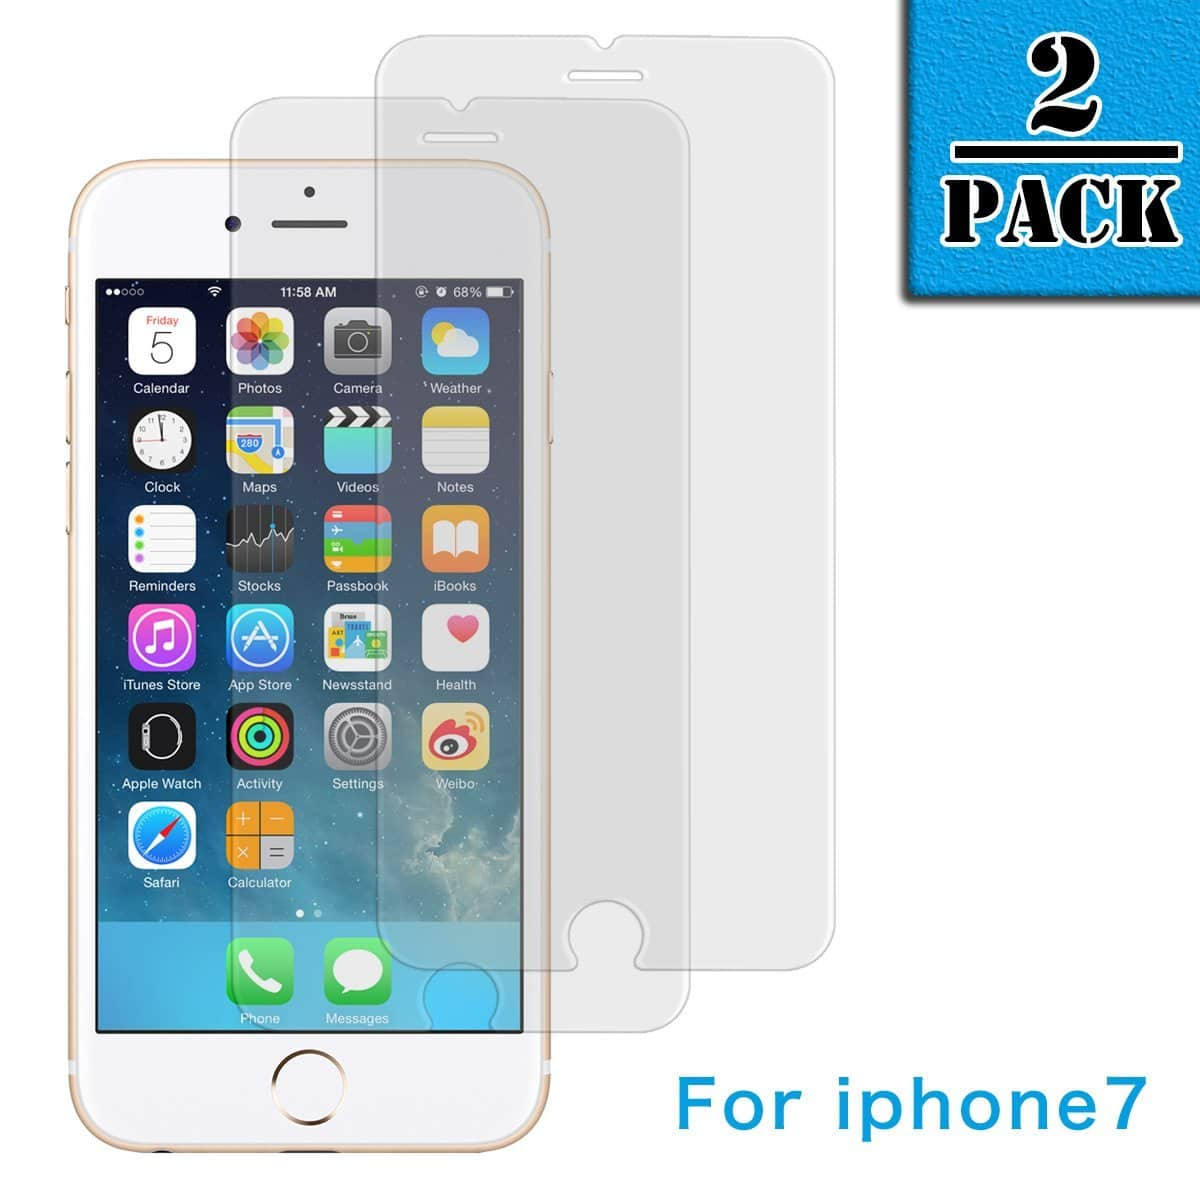 2 Pack Tempered Glass Screen Protector for iPhone 7/ iPhone 5S/ iPad 2 for $2.99 & Up FS w/ Prime